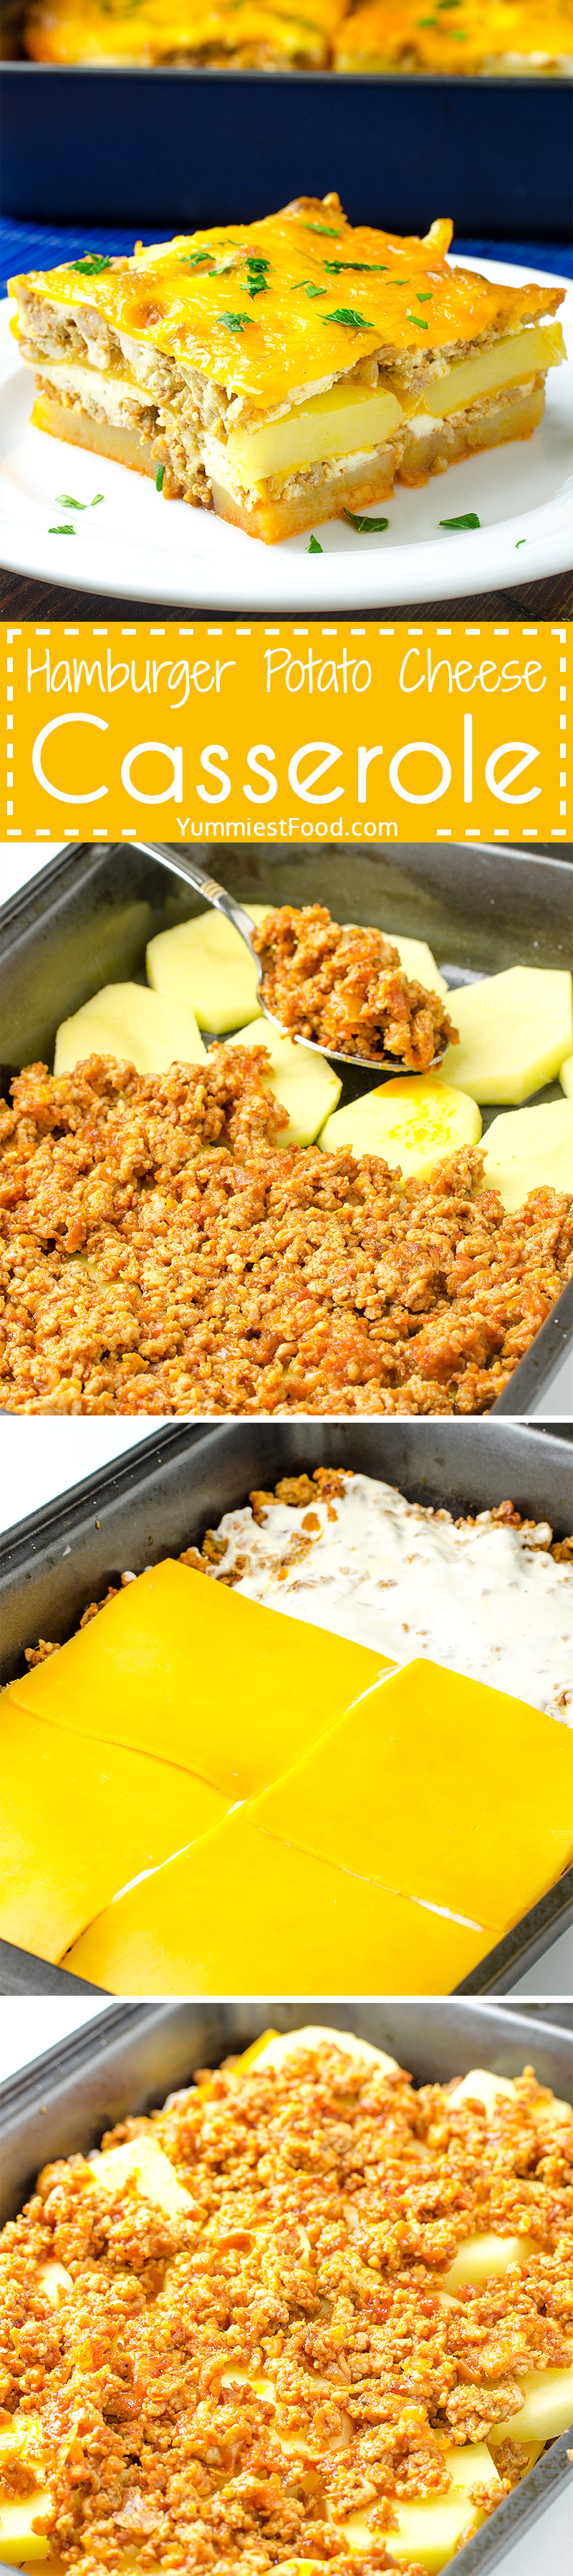 HAMBURGER POTATO CHEESE CASSEROLE - This easy dish is full of flavor and makes a fun dinner the whole family will love